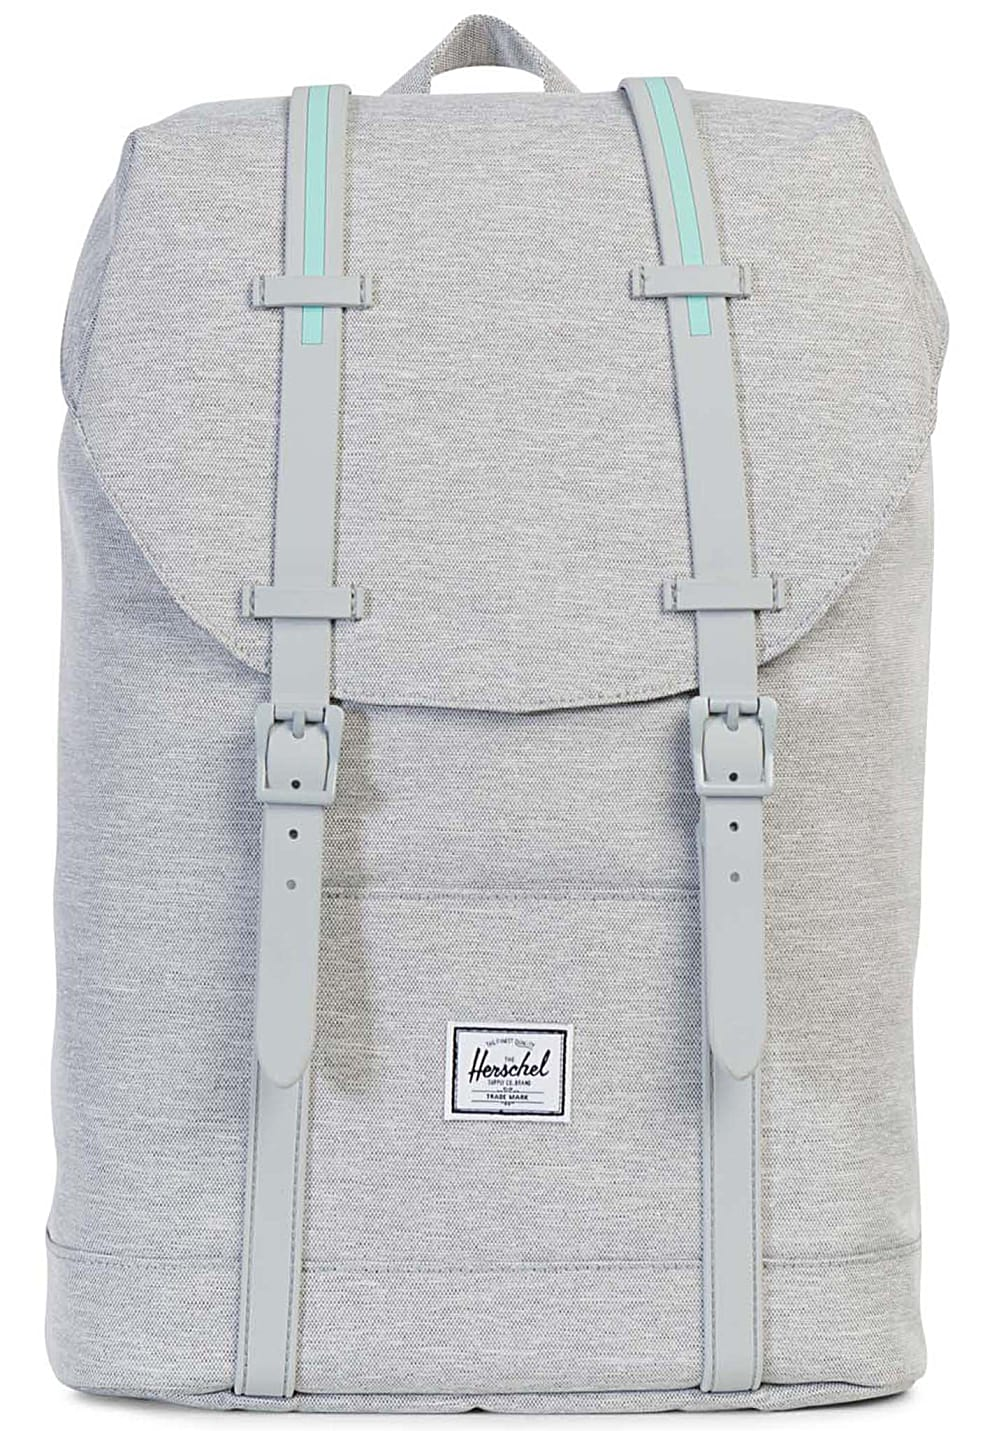 Herschel Supply CO Retreat Mid-Volume Rucksack - Grau - broschei